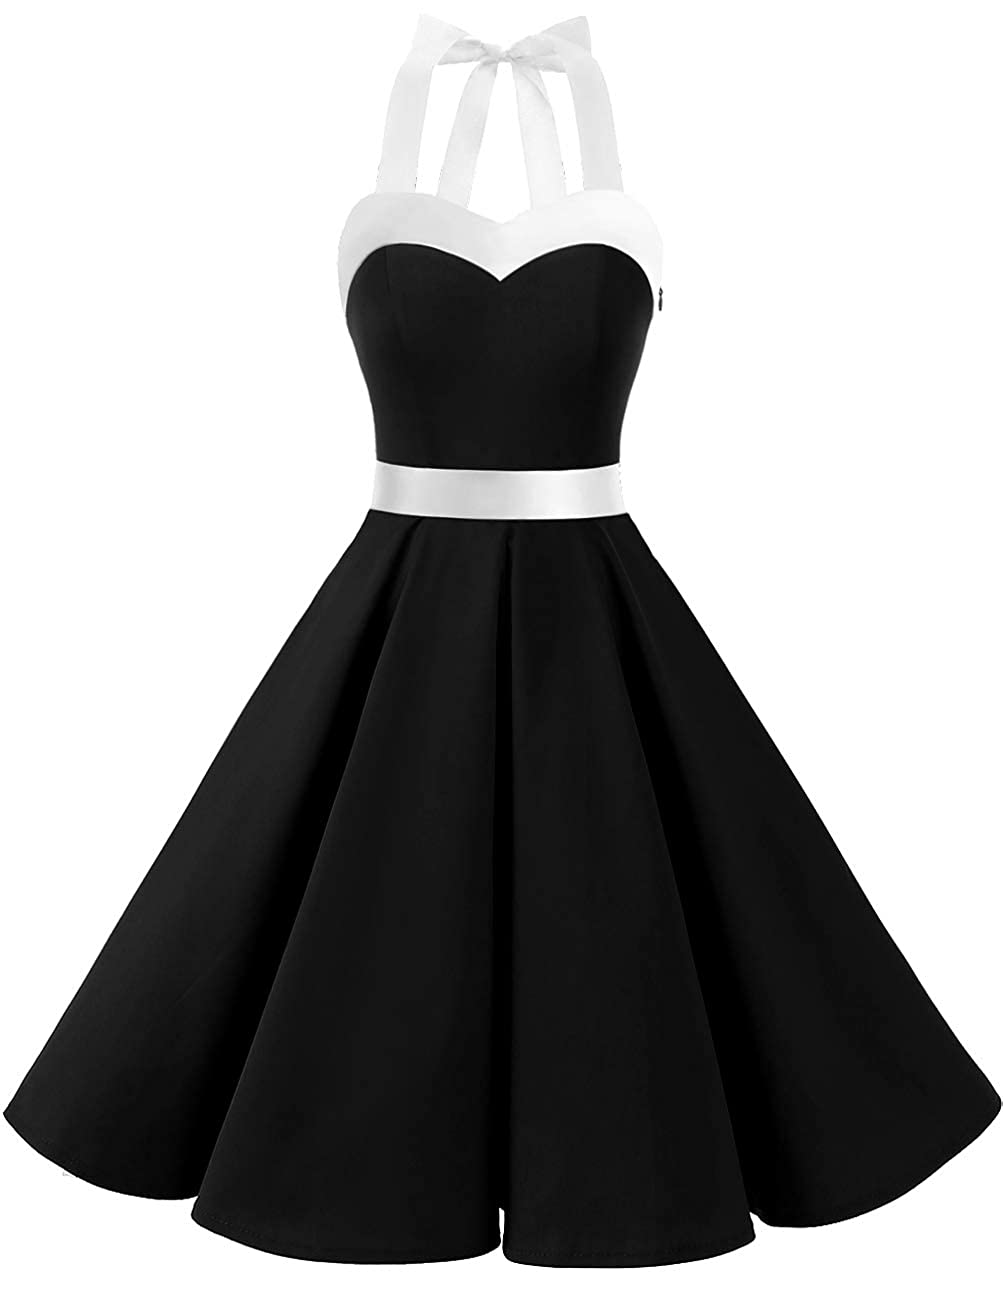 TALLA 3XL. Dresstells® Halter 50s Rockabilly Polka Dots Audrey Dress Retro Cocktail Dress Black White 3XL